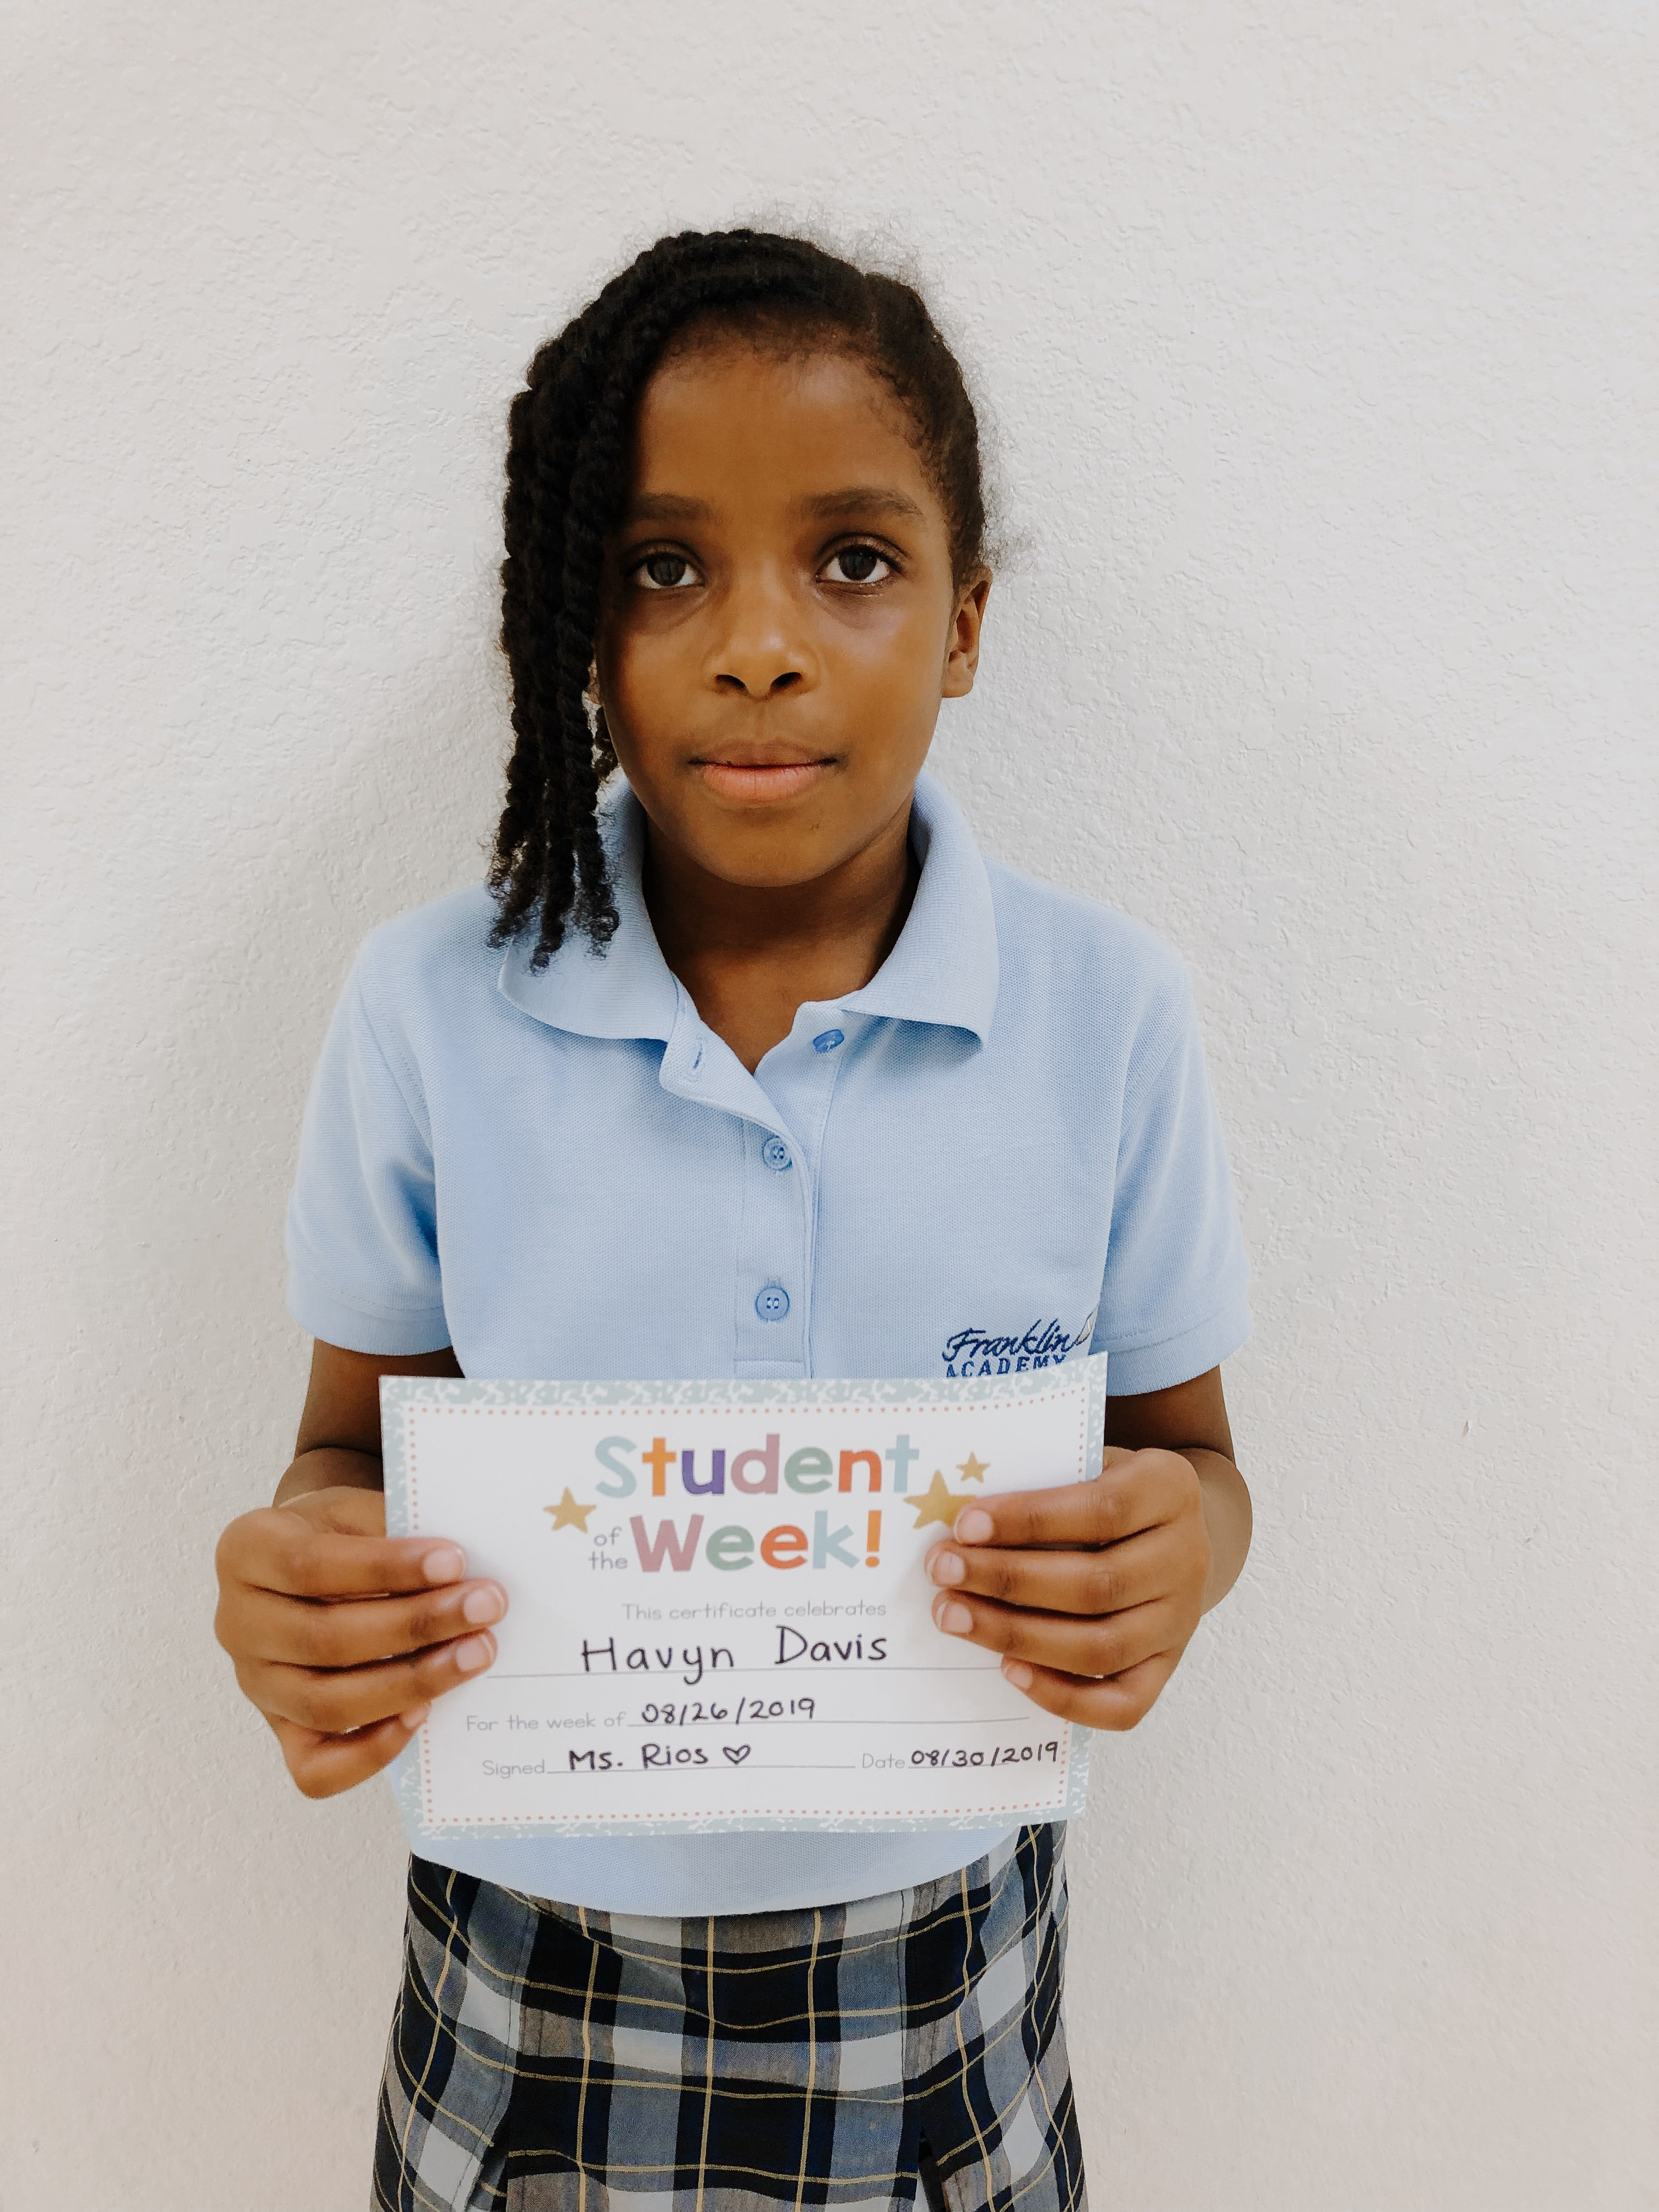 STUDENT OF THE WEEK! Image number 7